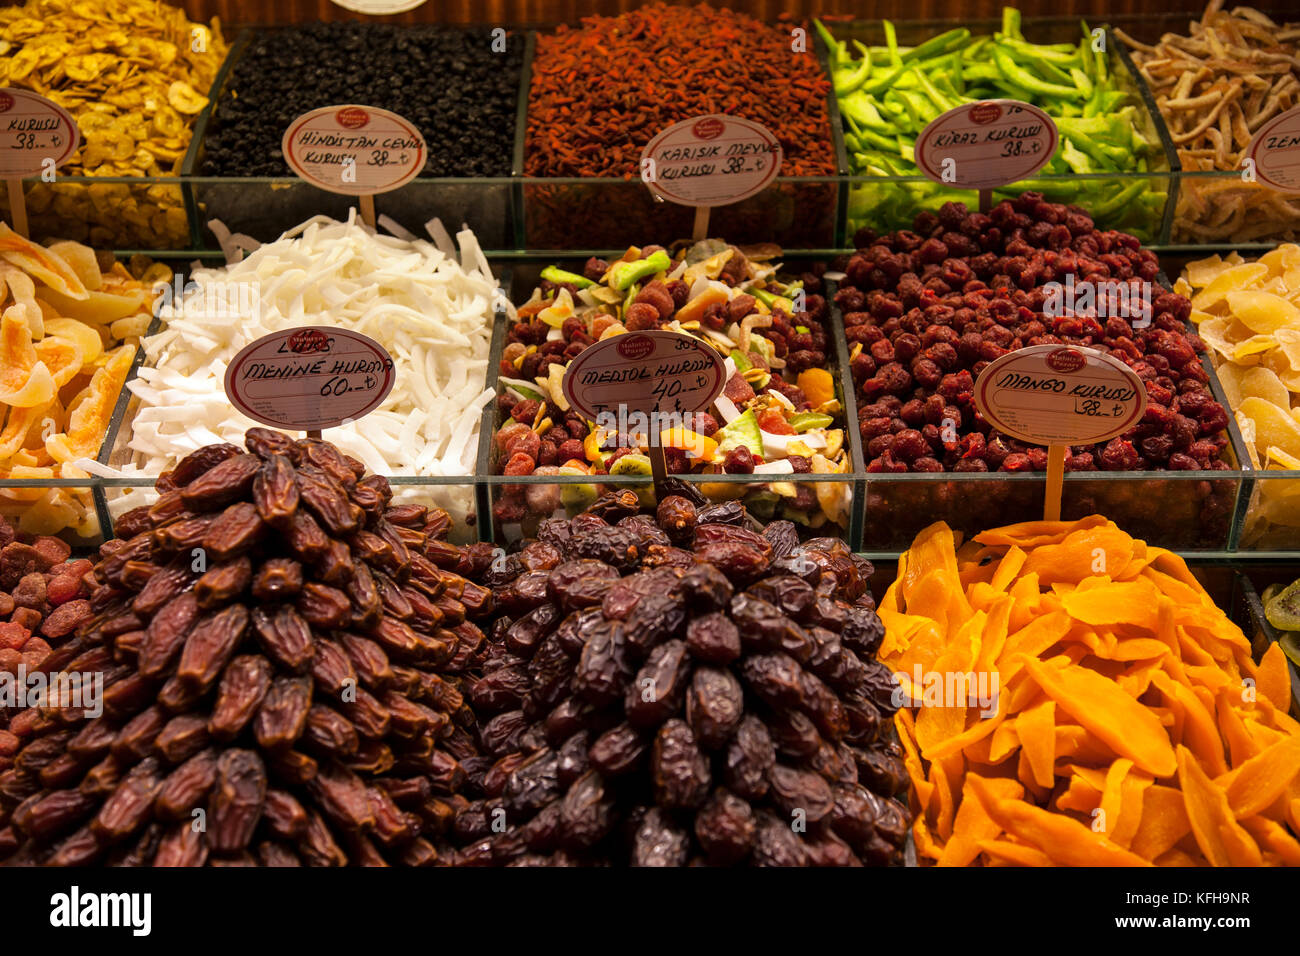 A variety of spices, dates and dried fruit at the spice market in Istanbul, Turkey. - Stock Image